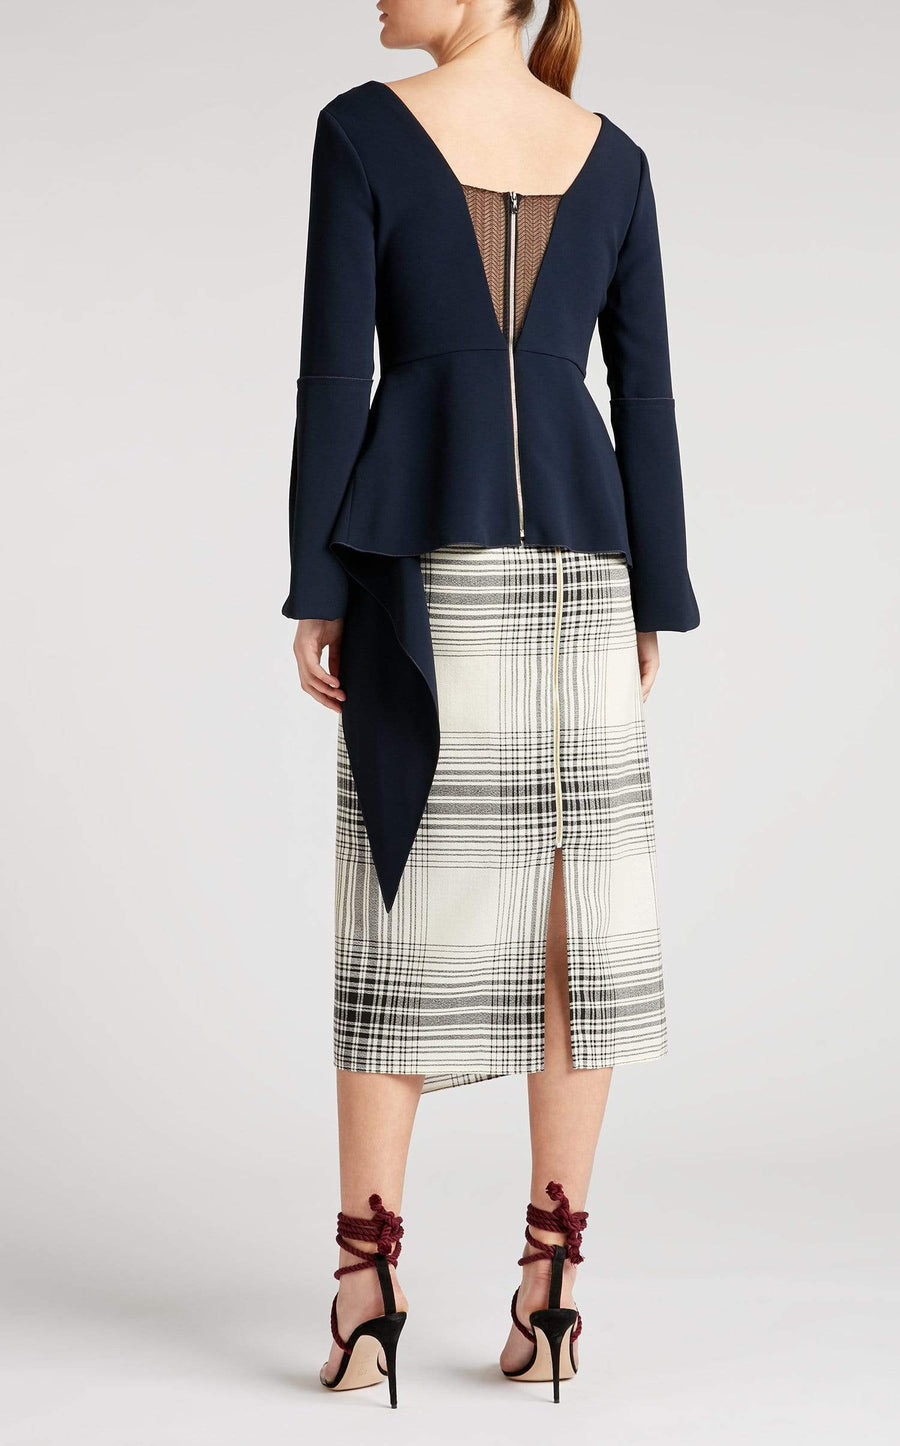 Leighton Top In Navy/Black from Roland Mouret